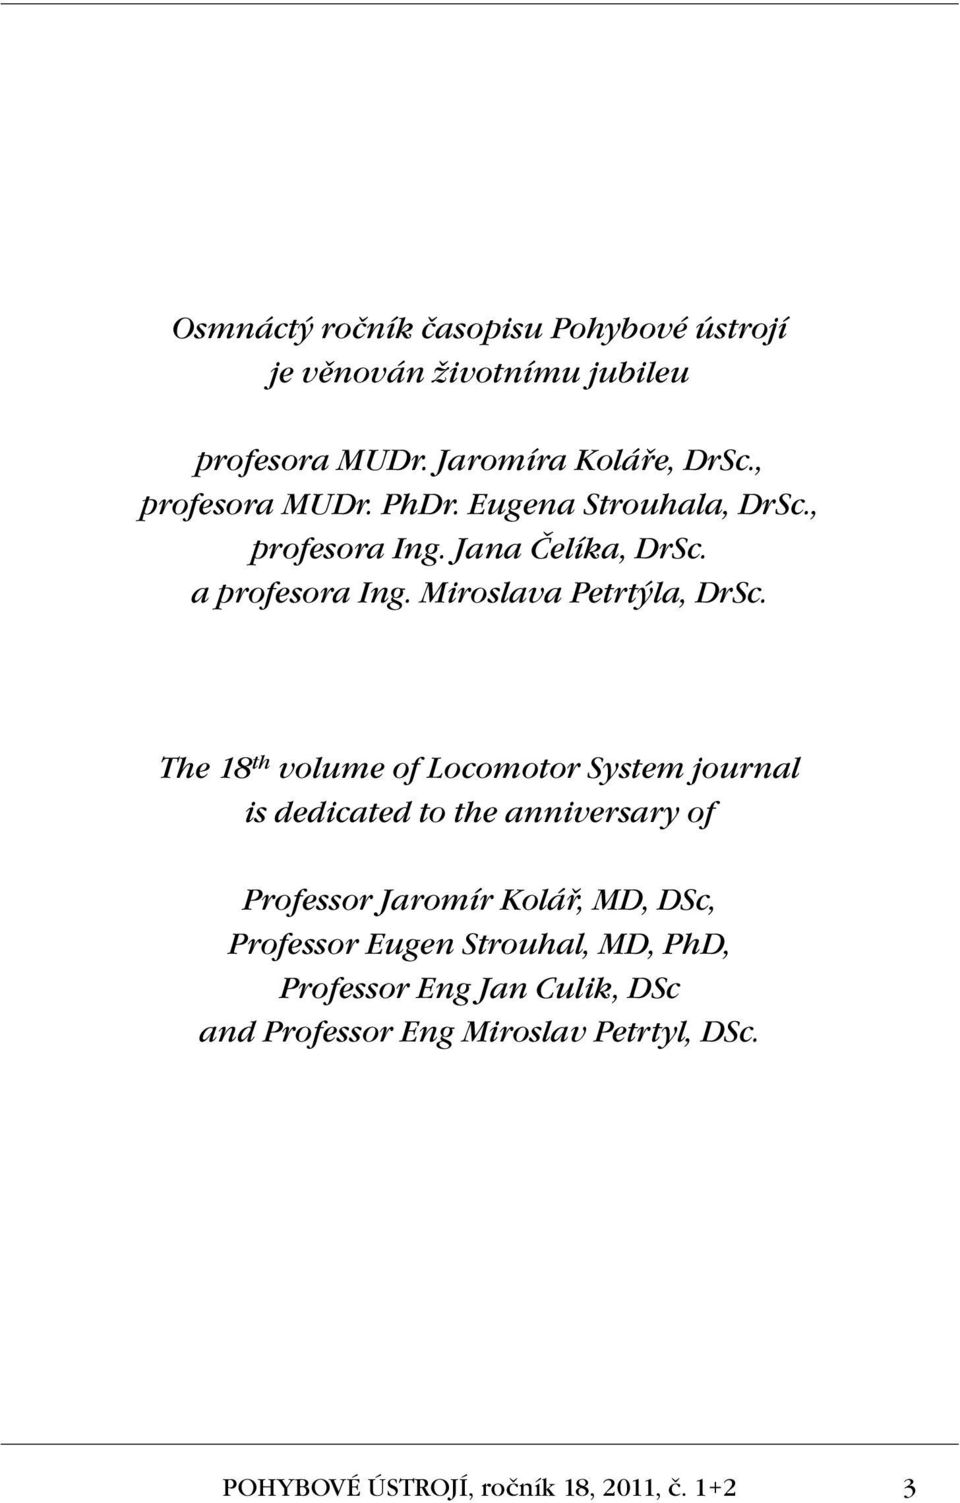 The 18 th volume of Locomotor System journal is dedicated to the anniversary of Professor Jaromír Kolář, MD, DSc, Professor